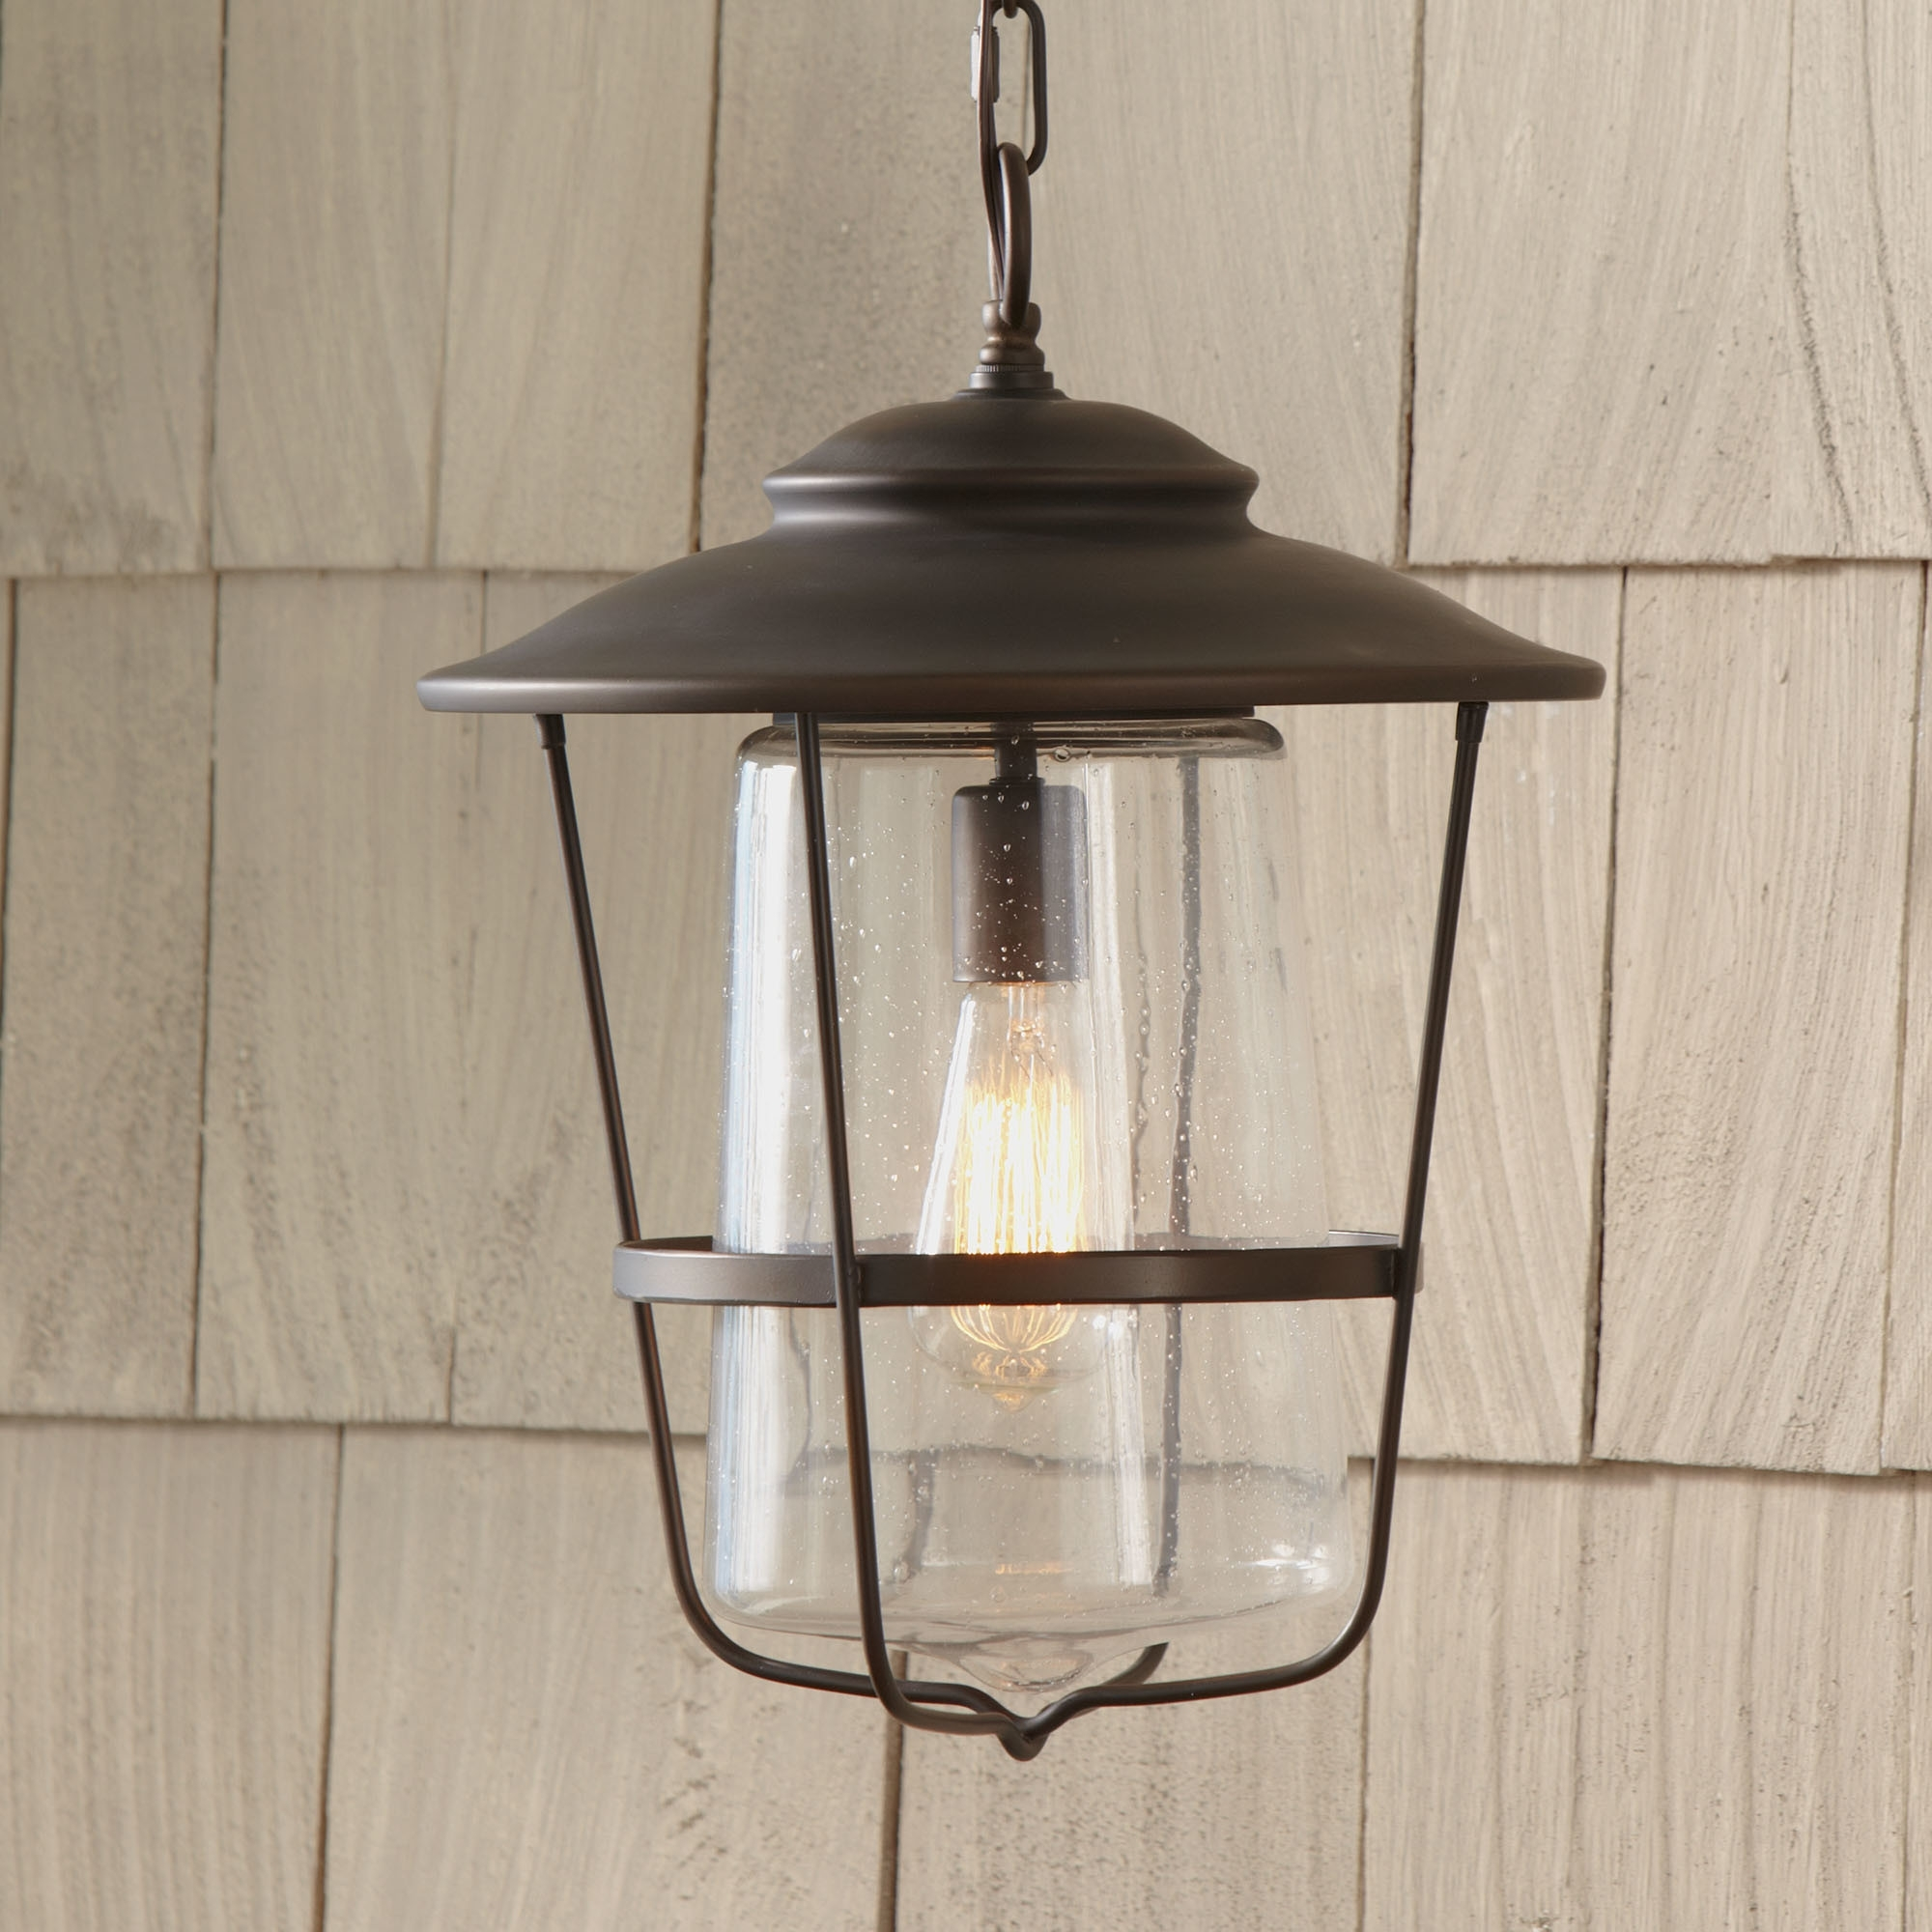 Outdoor Wall Lighting Wayfair 1 Light Lantern ~ Loversiq With Regard To Famous Ikea Outdoor Hanging Lights (View 15 of 20)